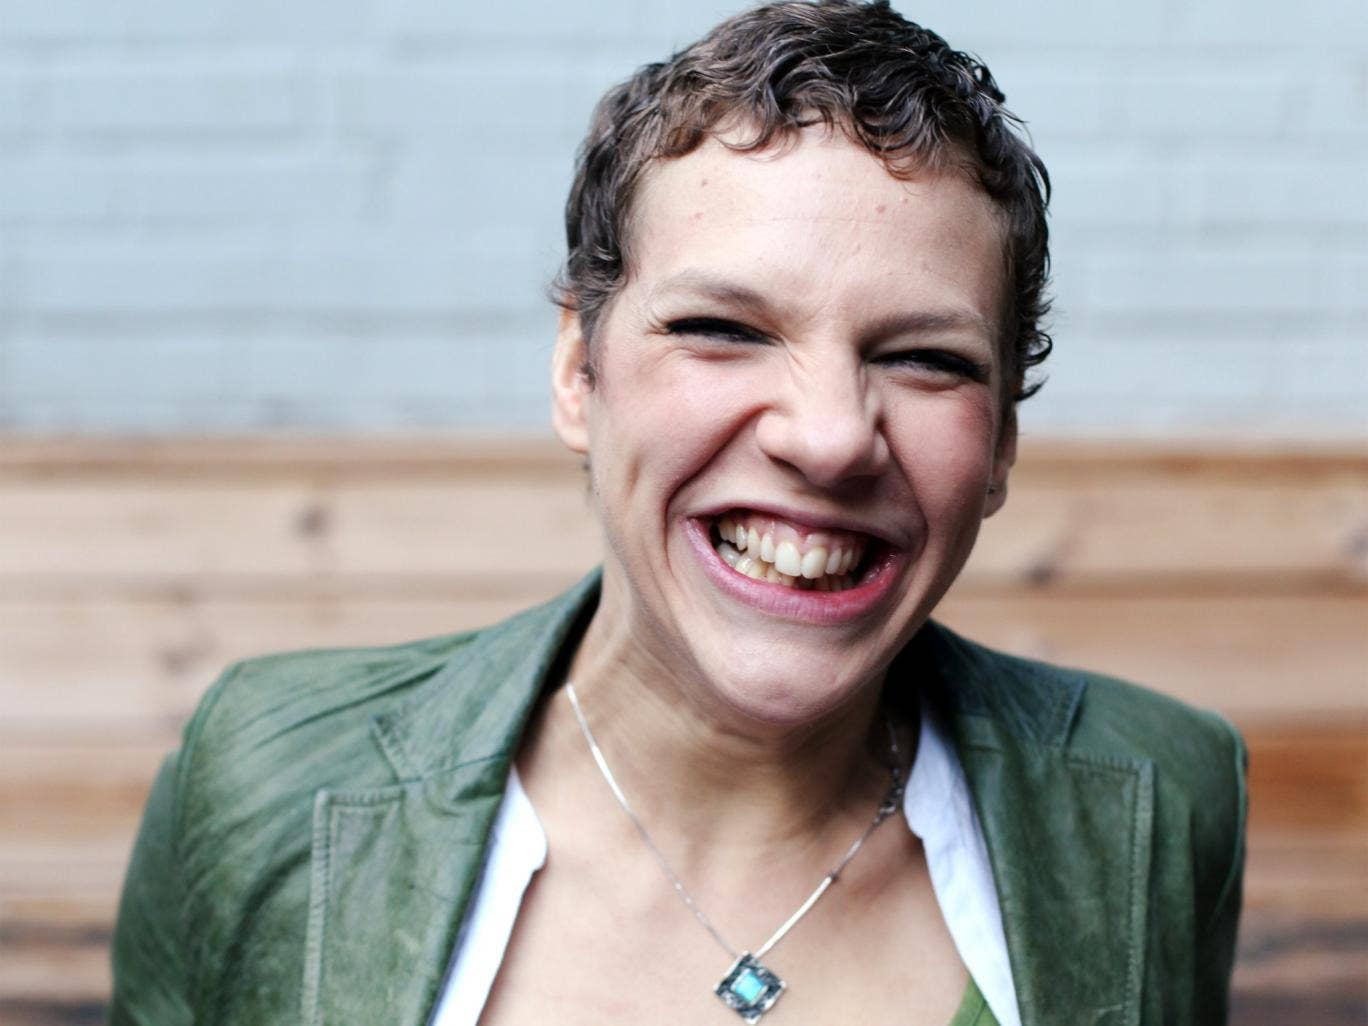 The last laugh: Francesca Martinez has turned her experiences of living with cerebral palsy into an award-winning stand-up show